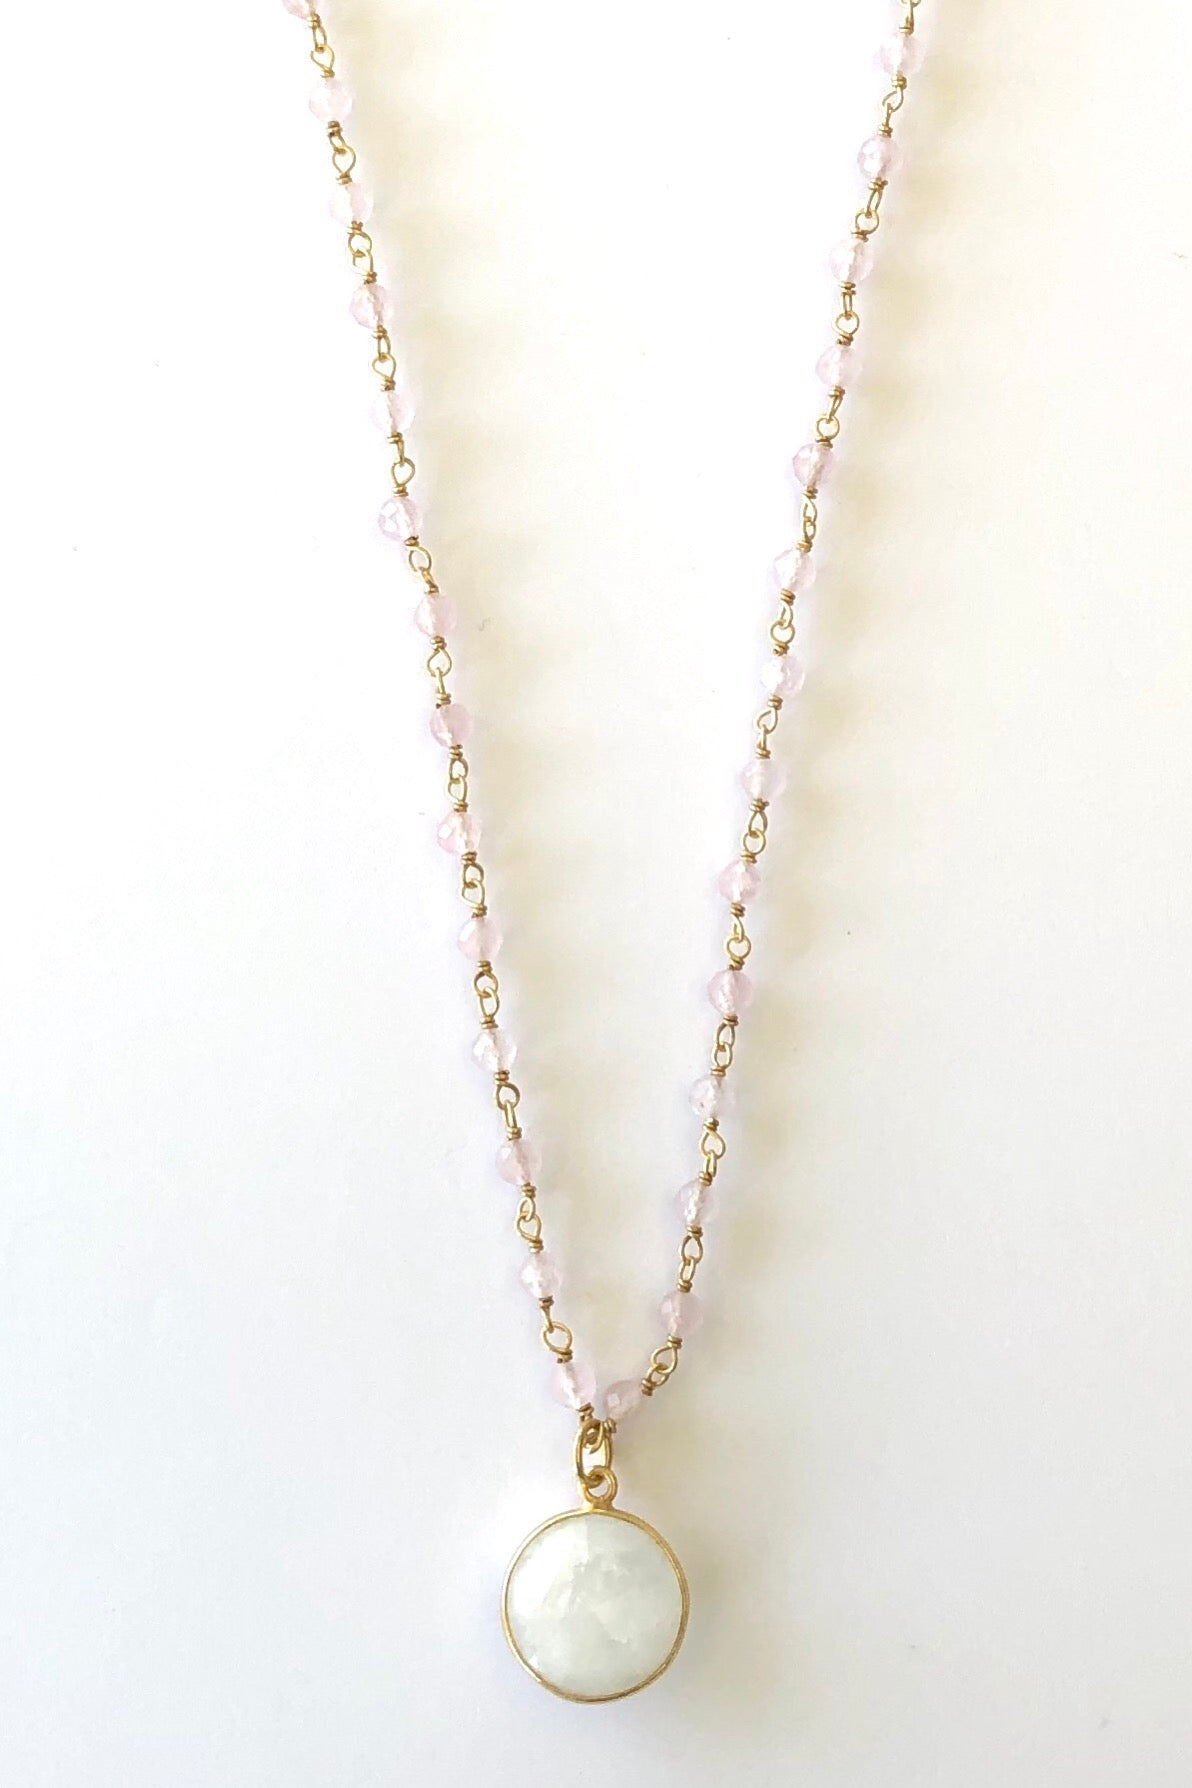 Oracle Venezia Necklace Moonstone Round, Vintage bohemian inspired necklace features 50cm length Gold vermeil and fine clear beaded chain, moonstone pendant set in gold vermeil.